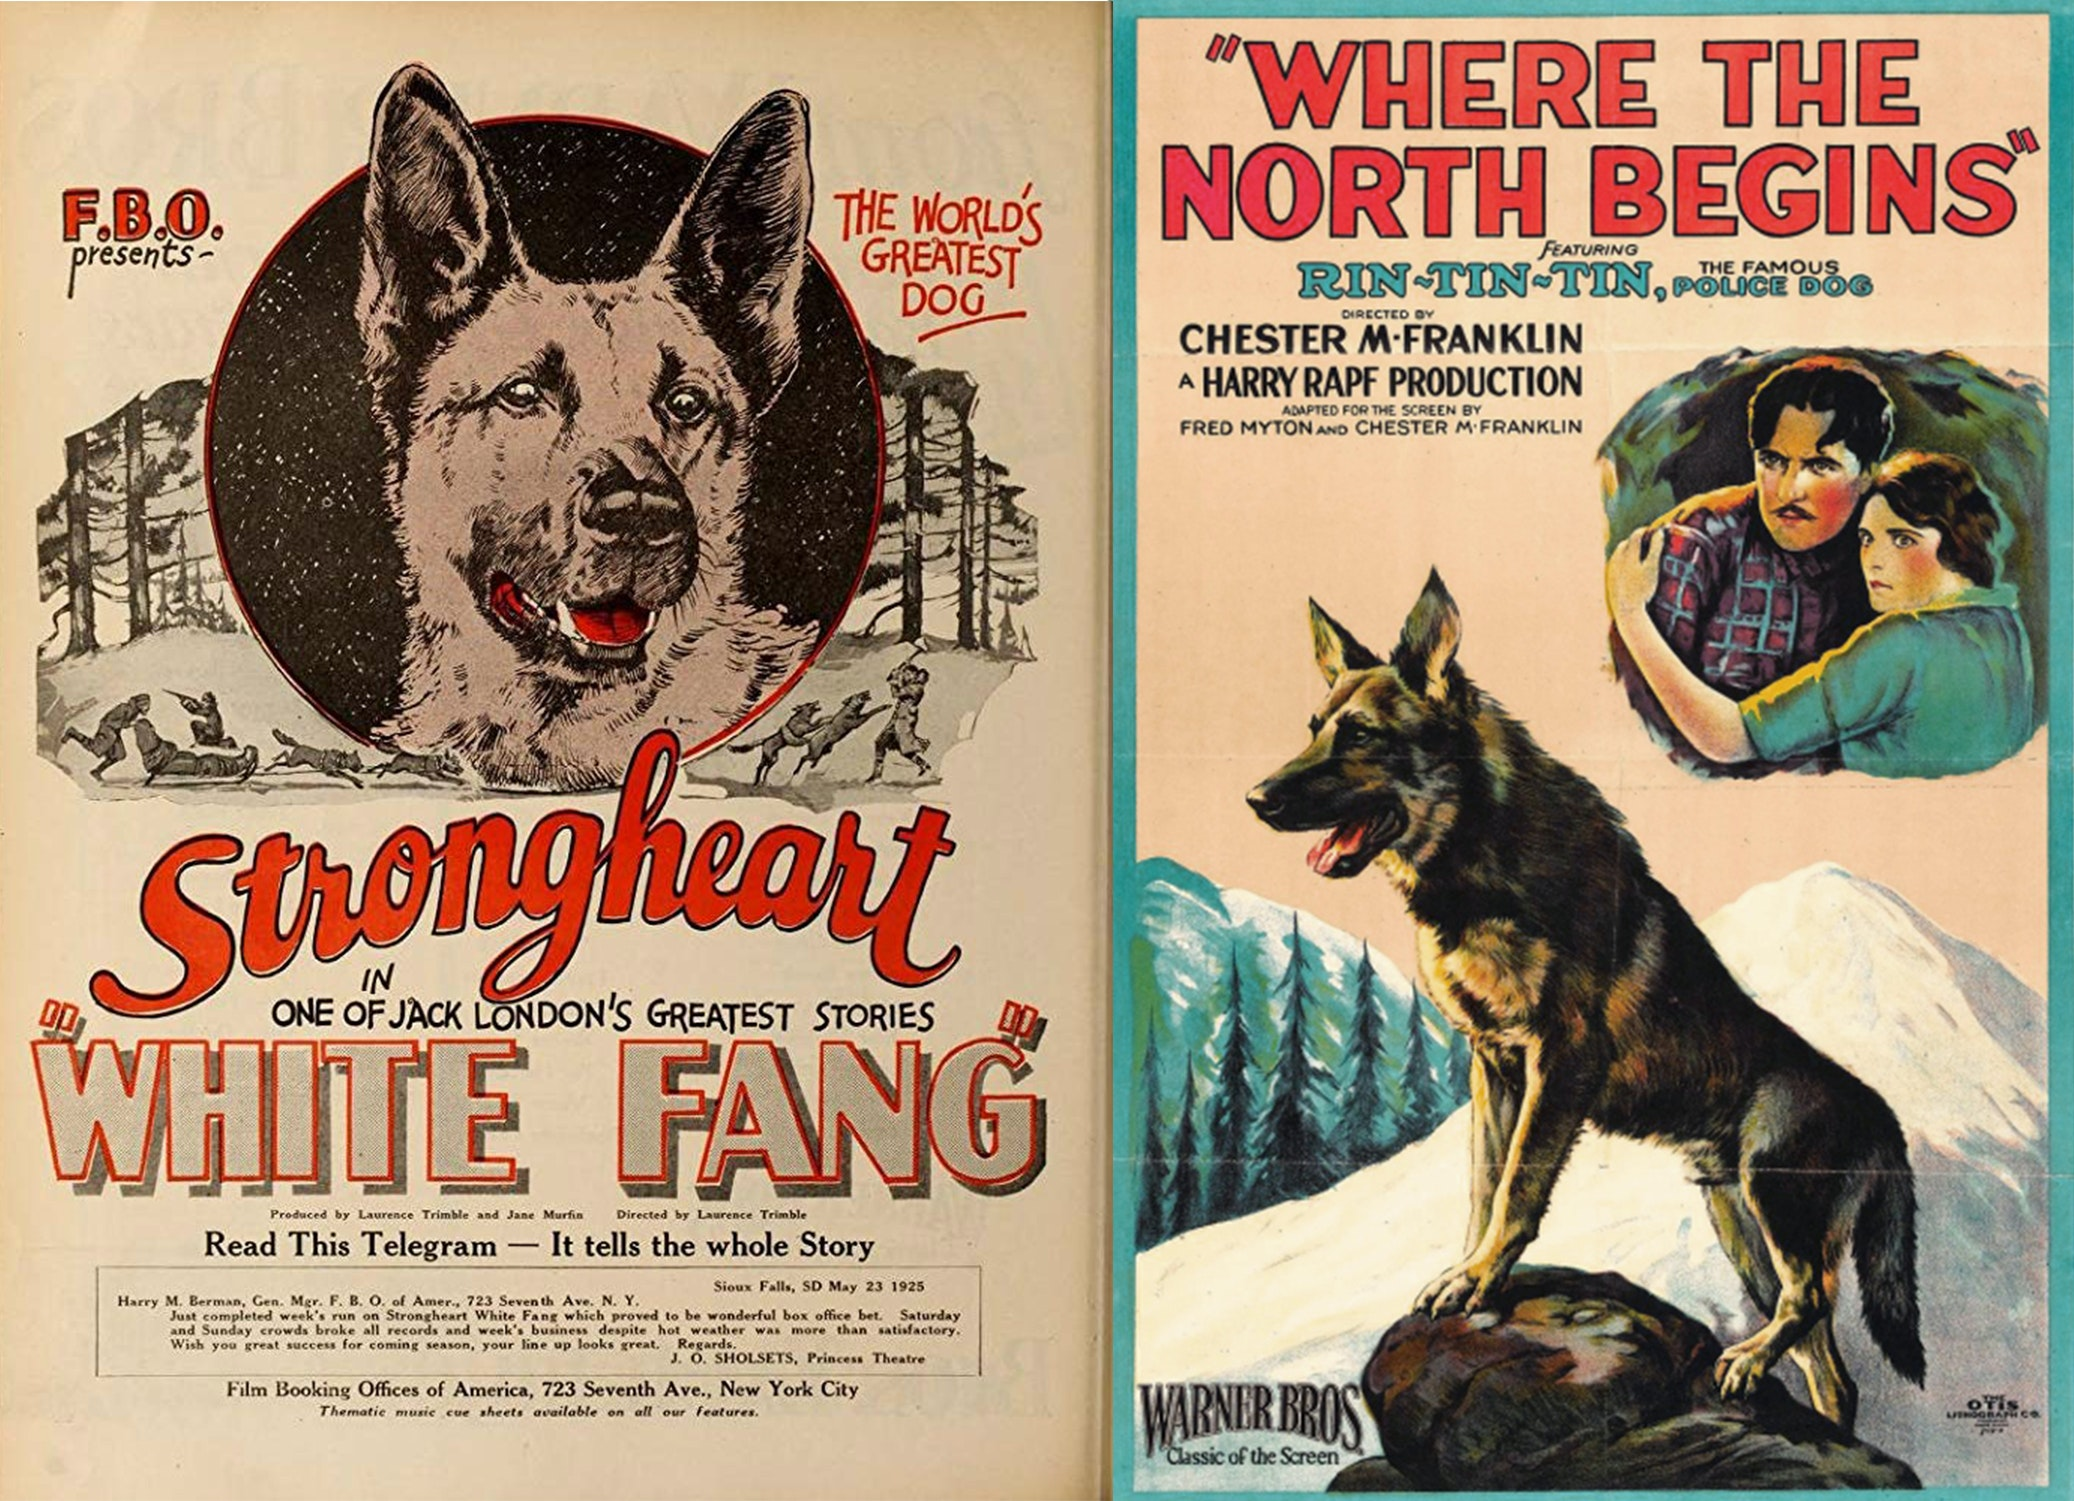 Two old movies posters, one featuring Strongheart and the other featuring Rin TIn TIn